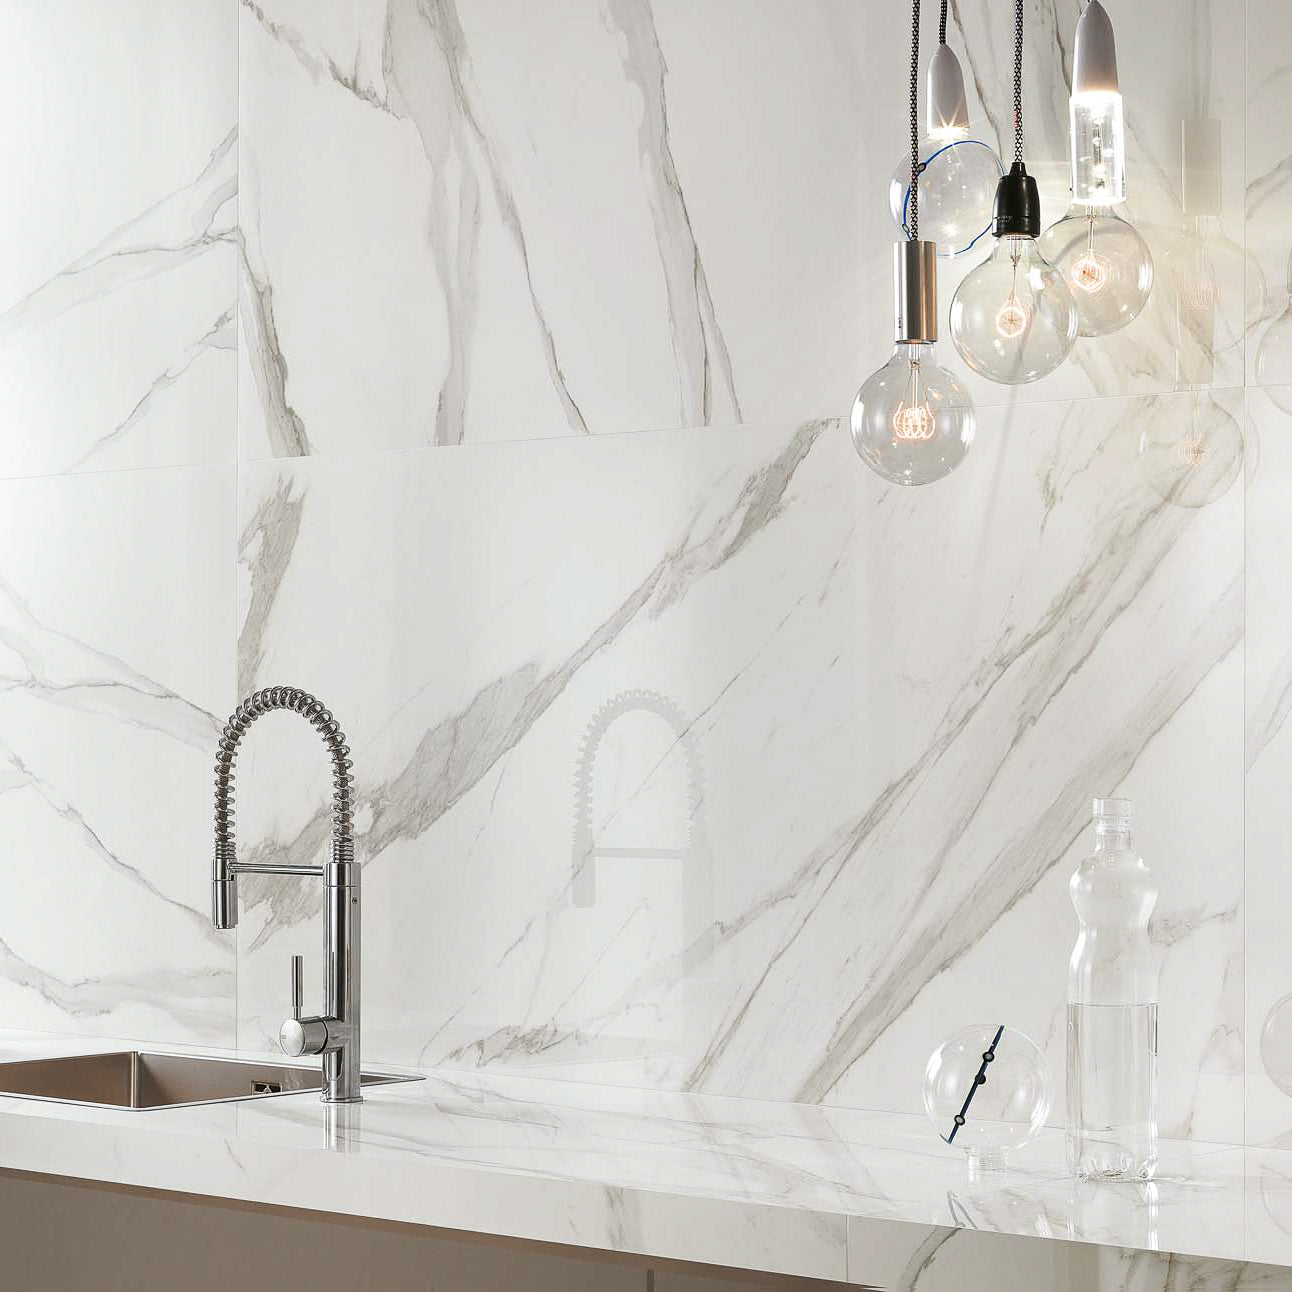 Buy quality contemporary porcelain tiles indoor and outdoor